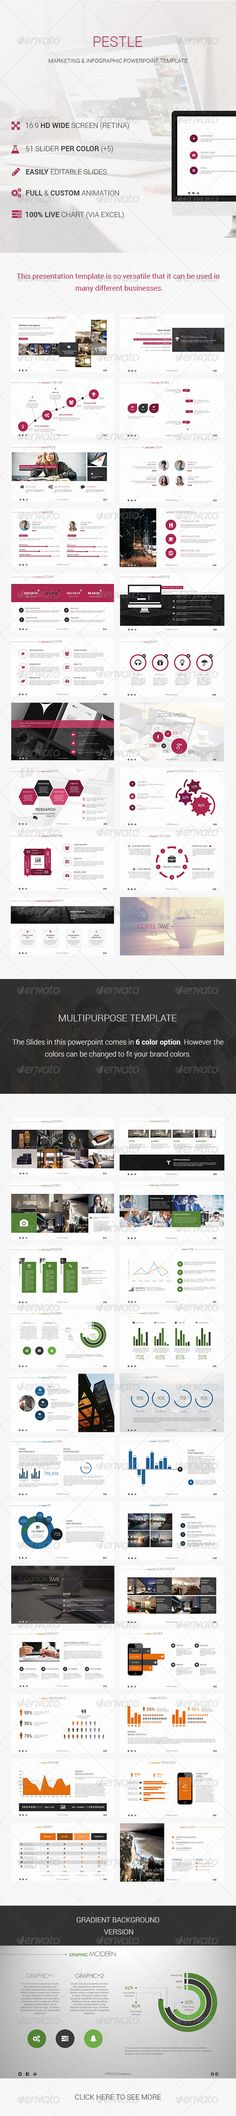 Pestle Marketing Presentation Template (Powerpoint Templates)